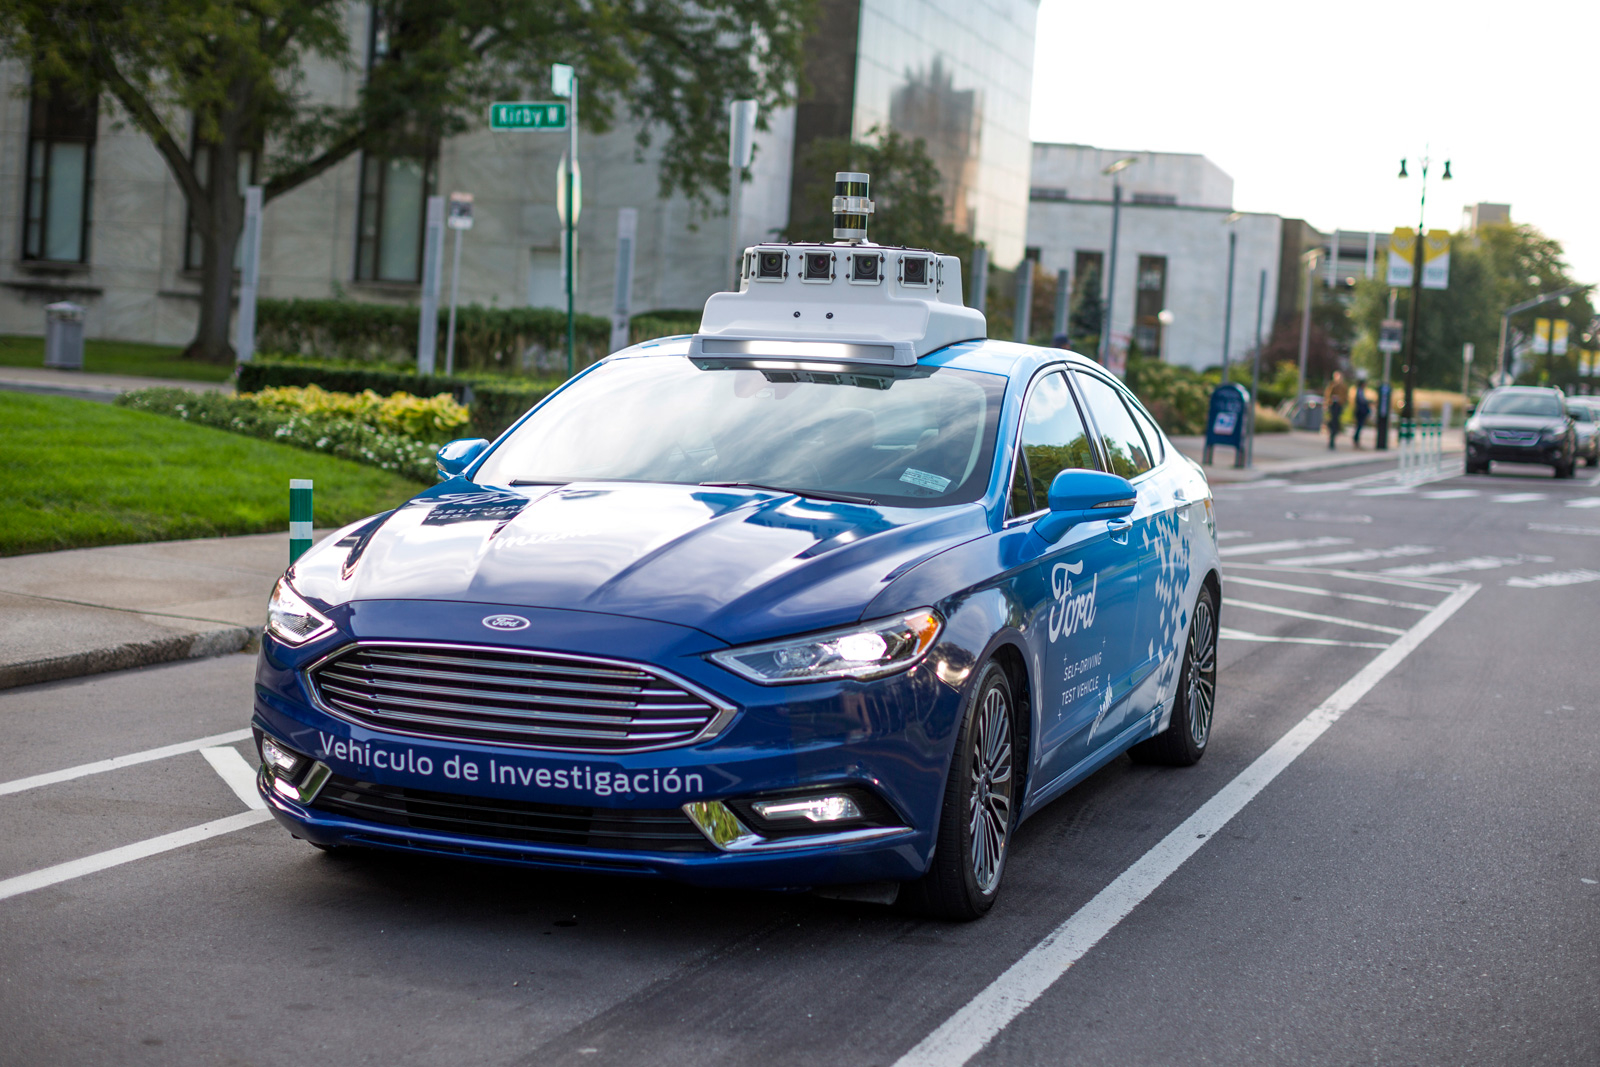 Patent Ford makes controlling Autonomous cars in a mobile game